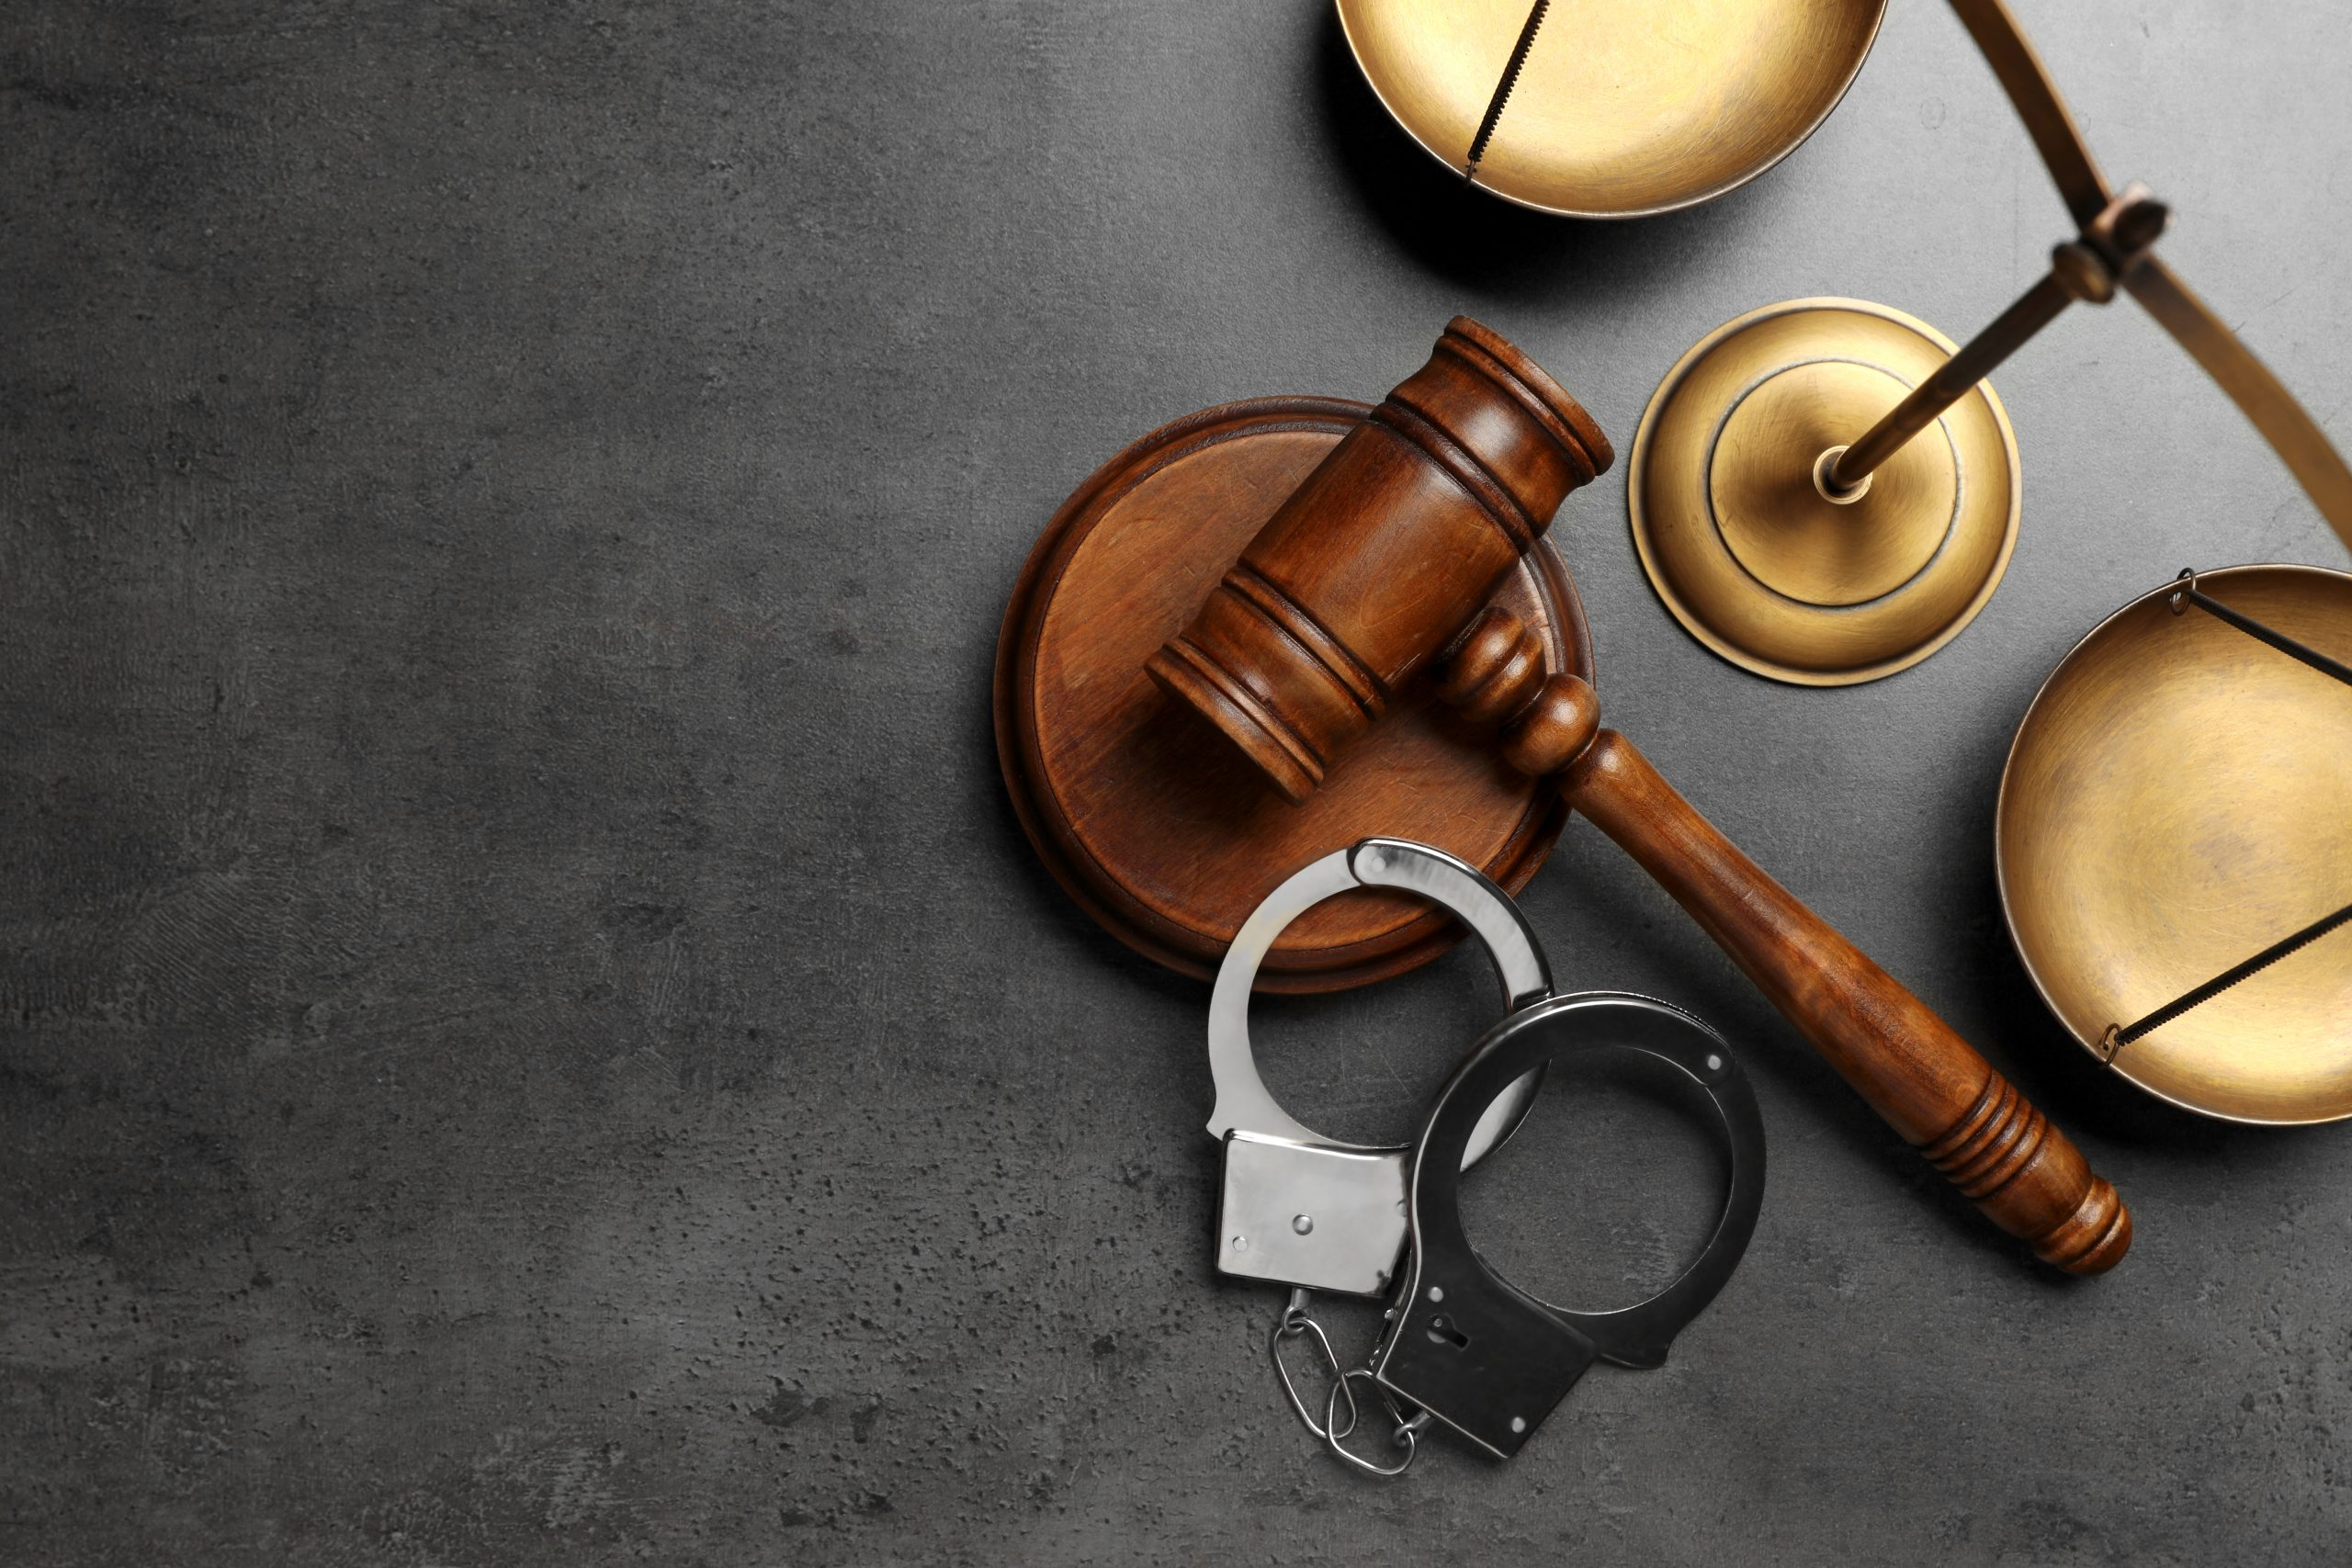 Handcuffs, judge gavel, and scale.